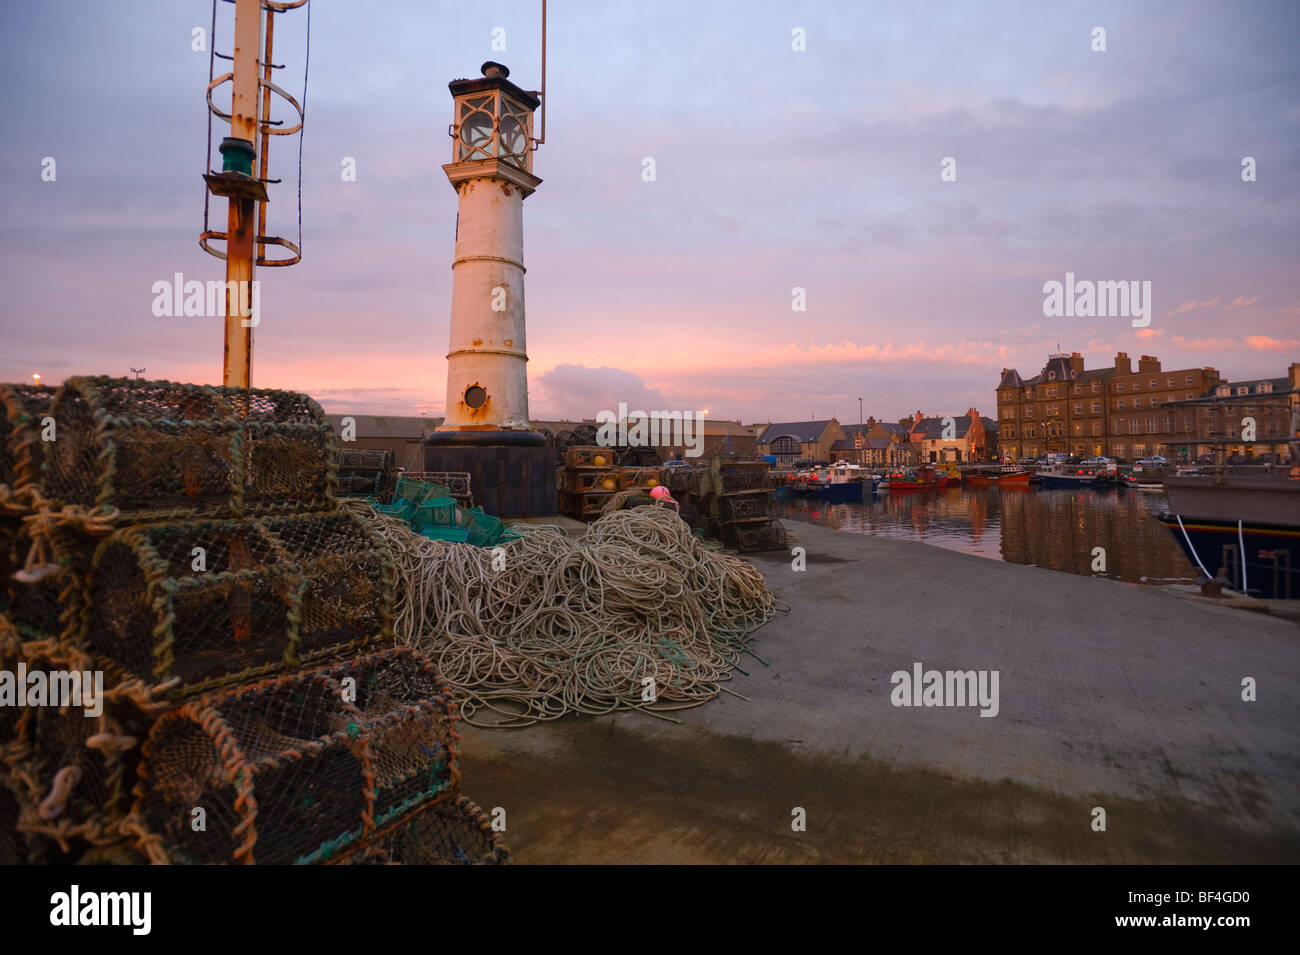 Lighthouse and fishing weirs at the harbour, Kirkwall, Orkney Islands, Scotland, United Kingdom, Europe - Stock Image